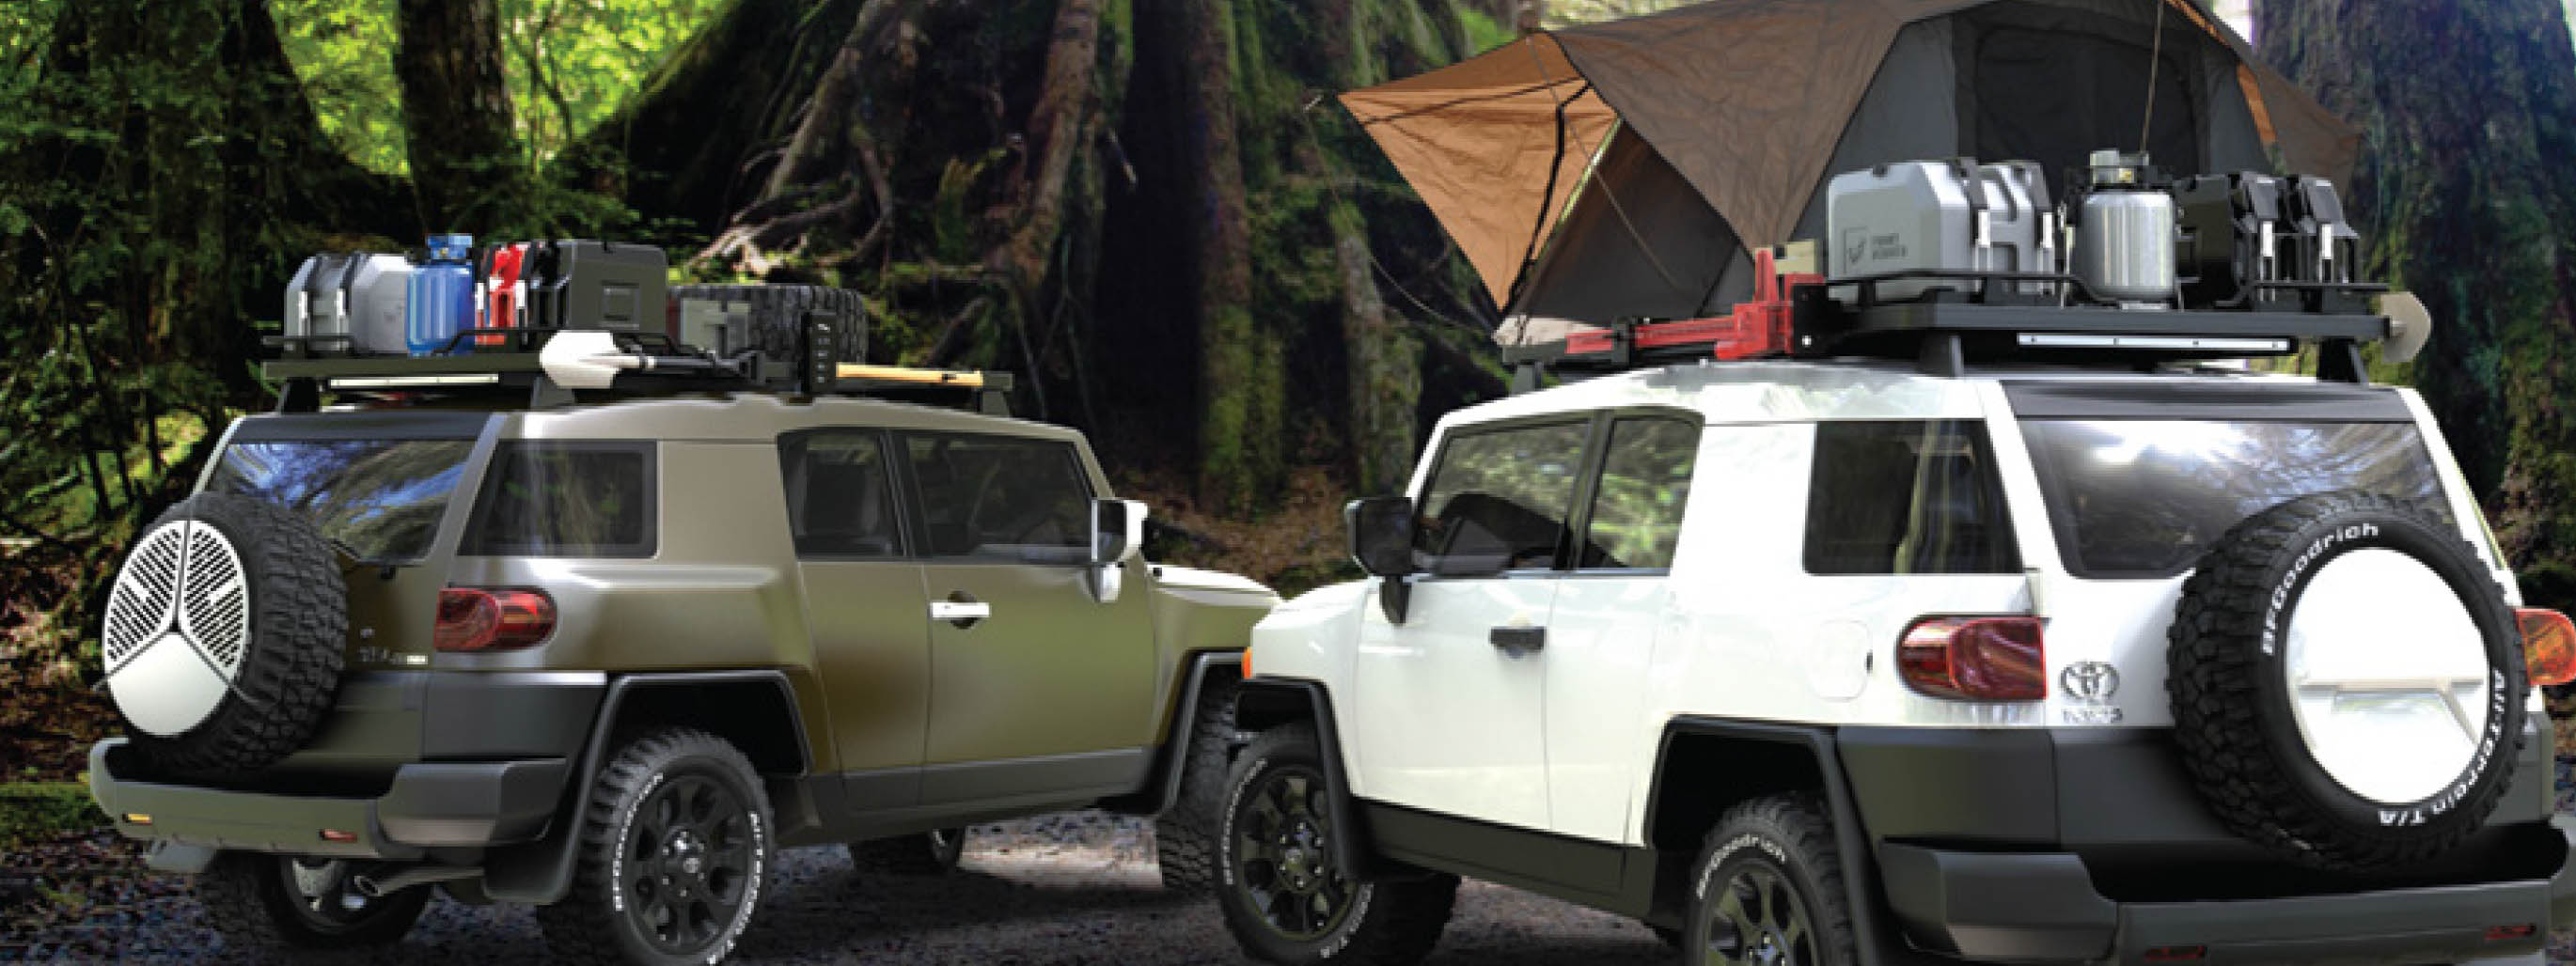 Overlanding & Off Road Gear | Toyota 4x4 | Endless Horizon Outfitters